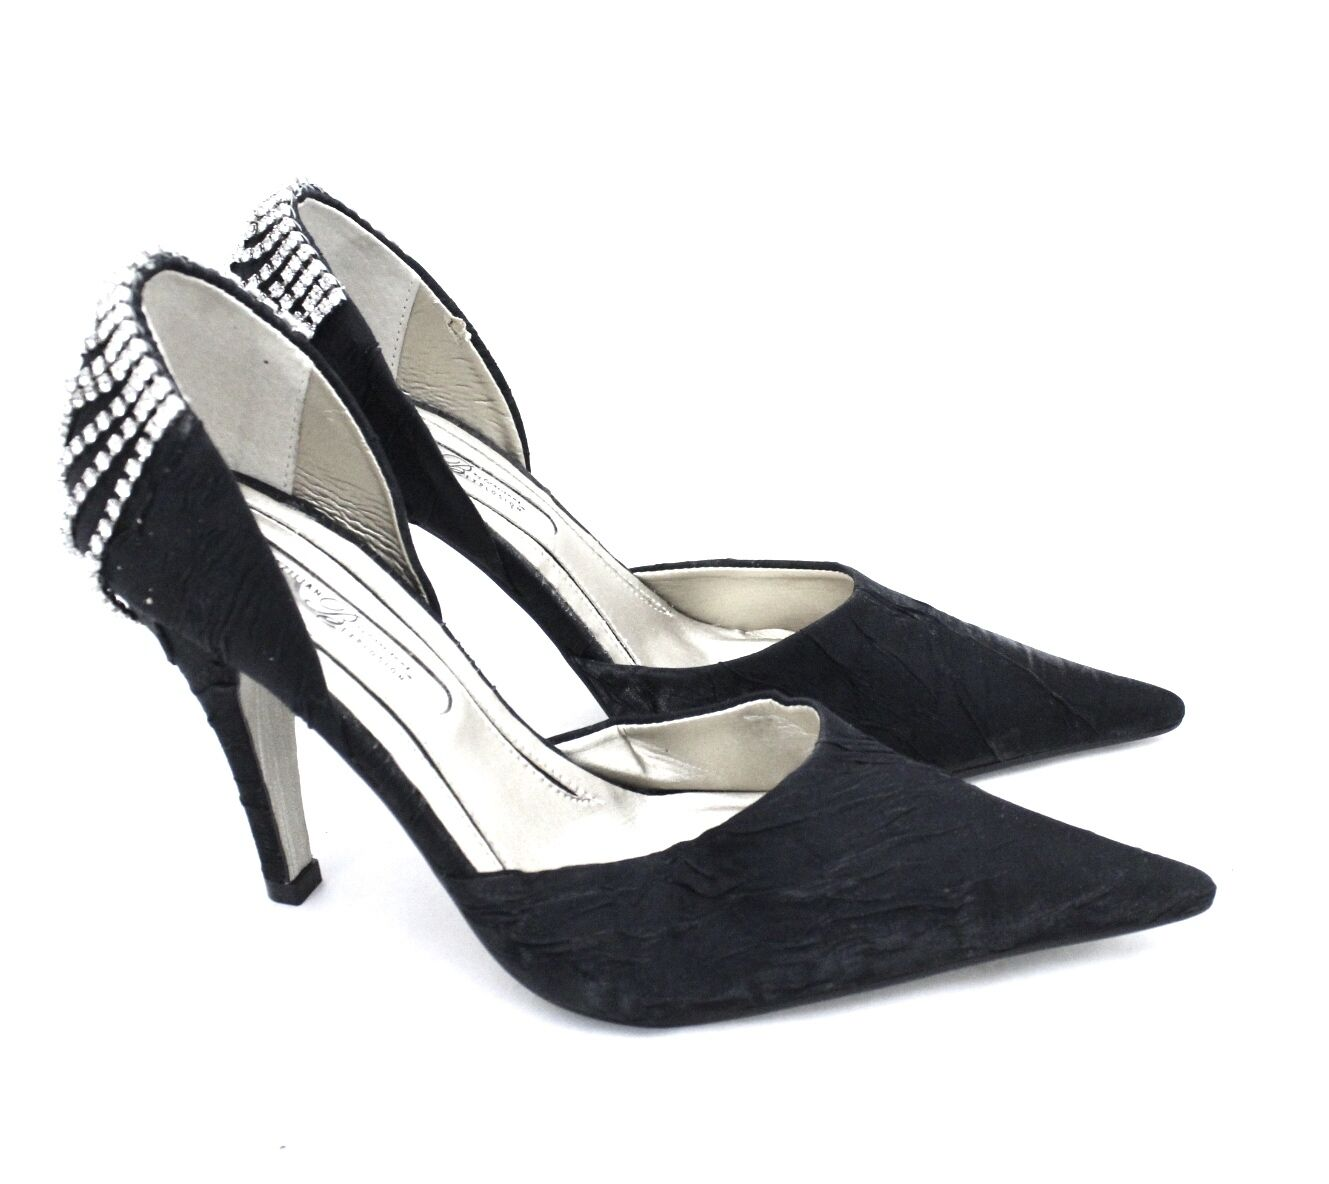 i nuovi stili più caldi Gracienne 7B NEW Evening Heels 4  Stiletto Point Point Point Toe nero Rhinestone Heels  398  acquisti online